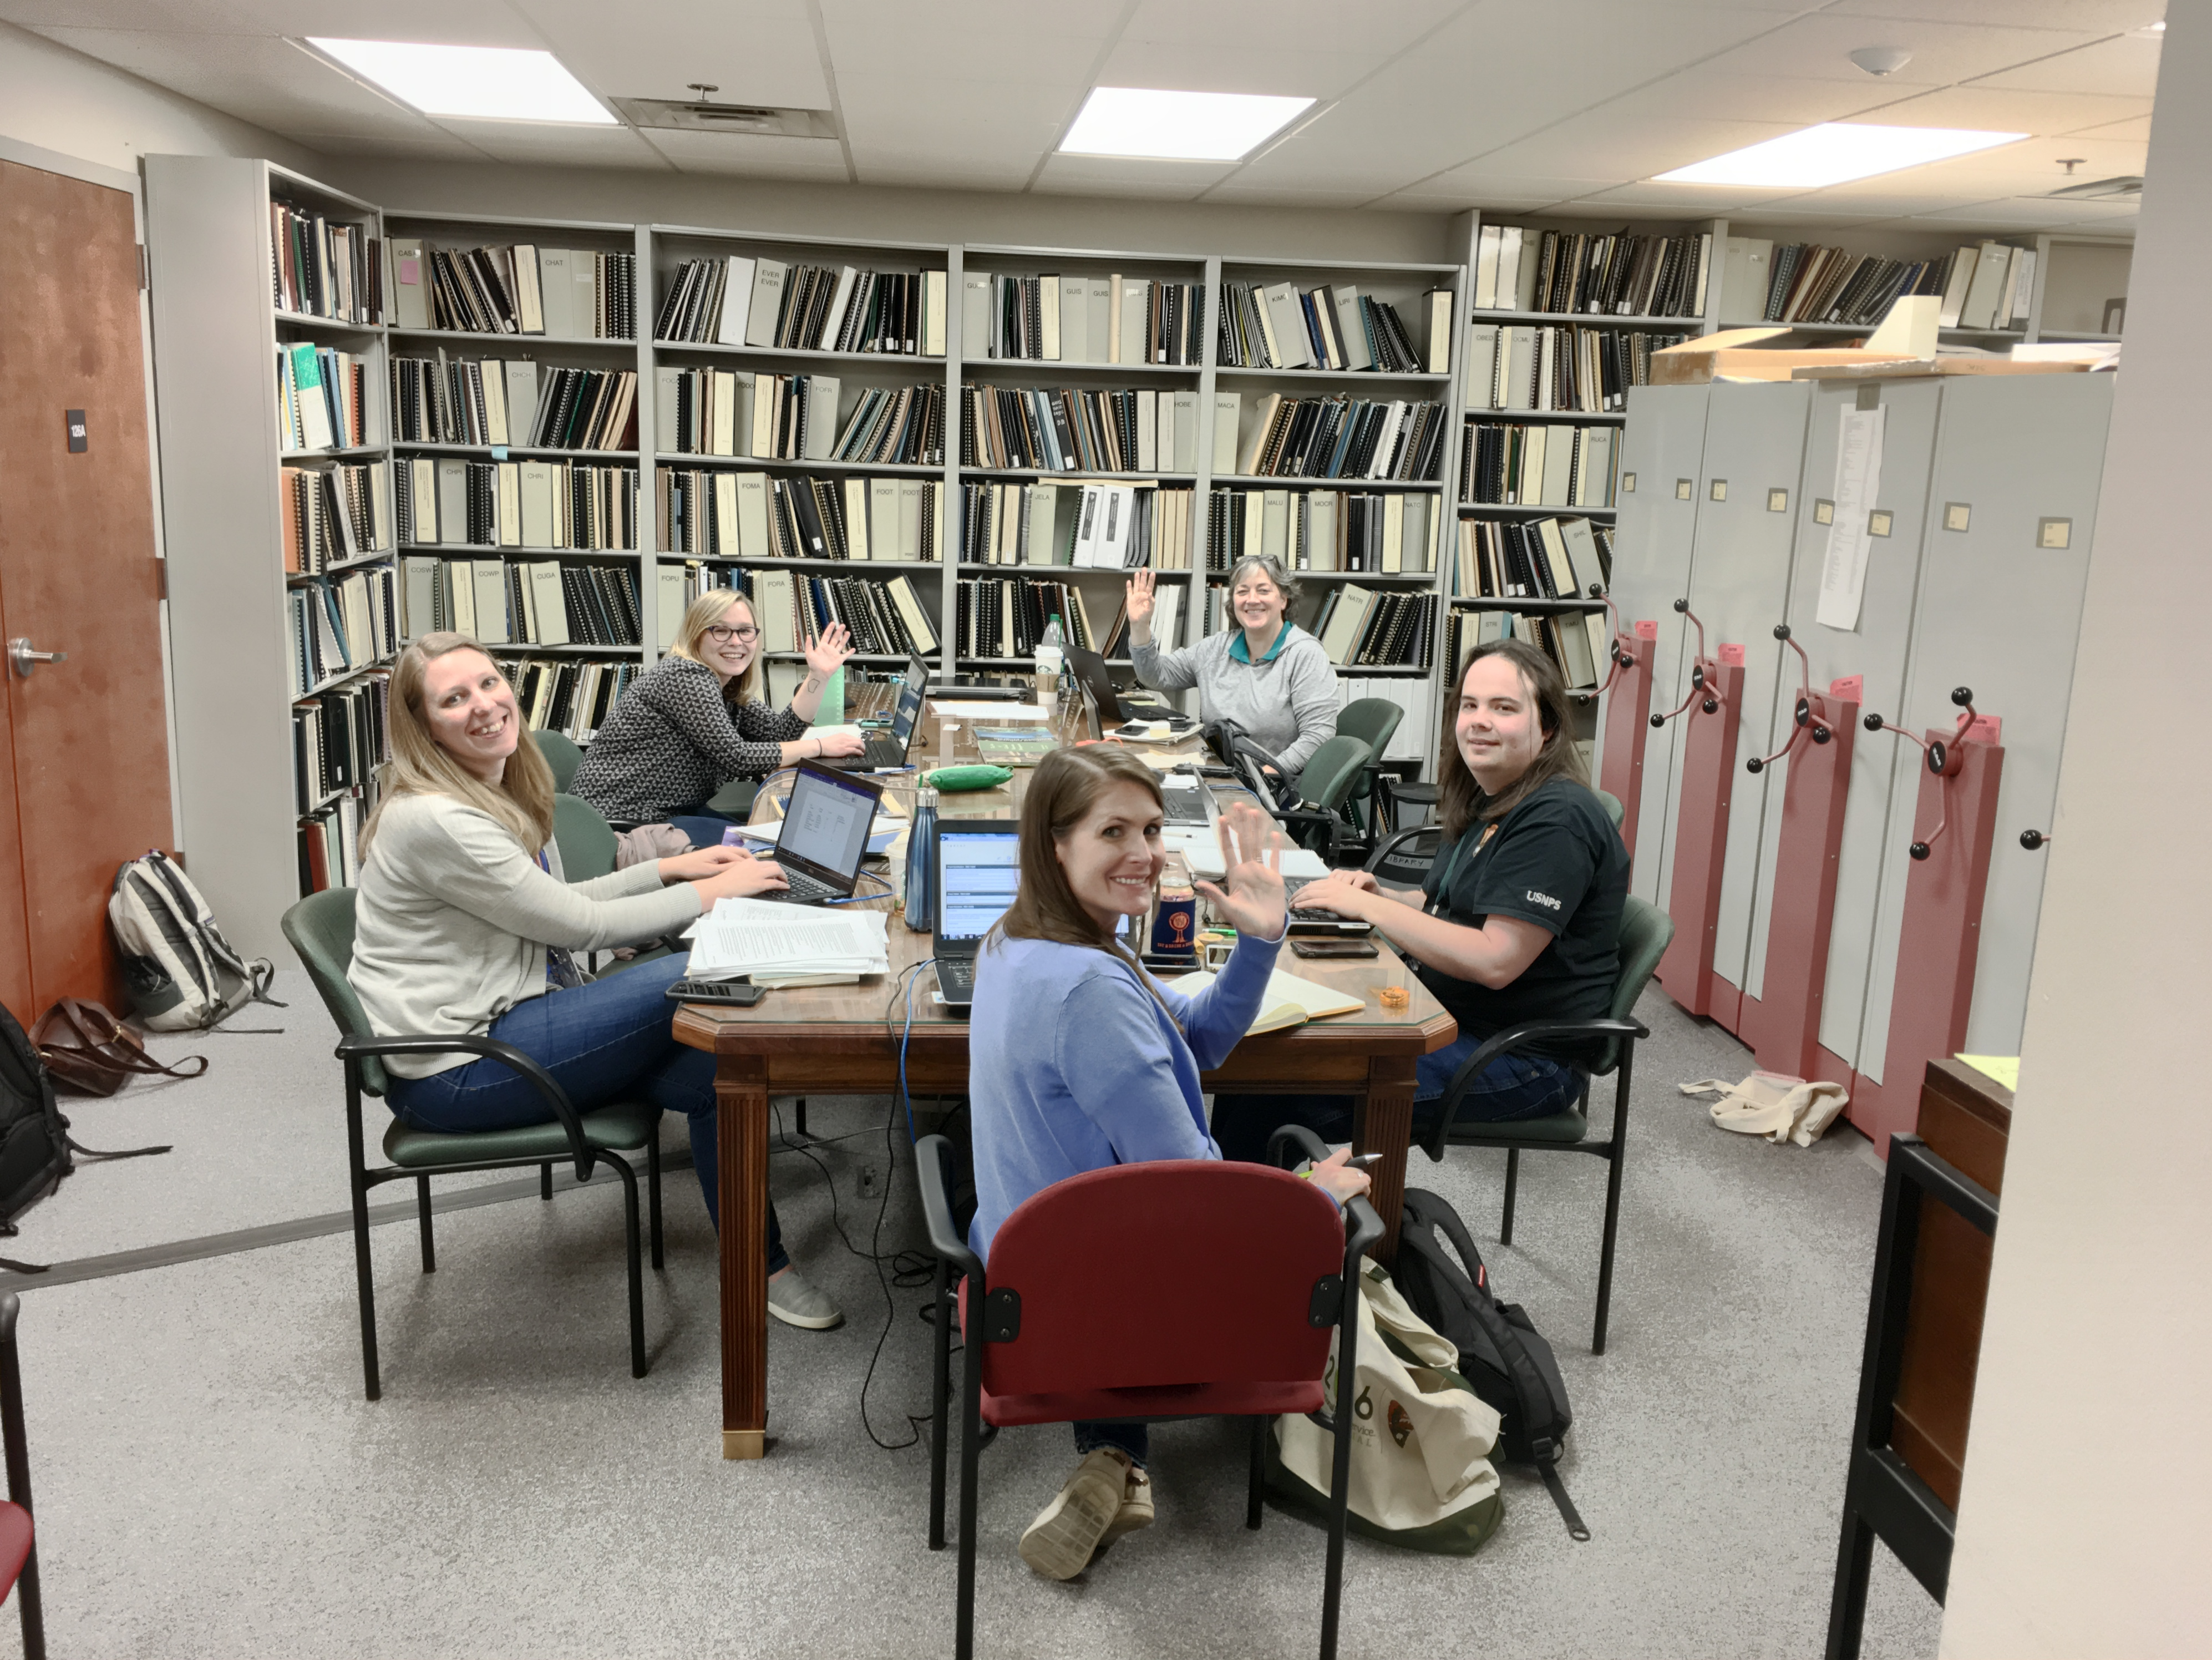 Collection Management Planning Team Visits SEAC for Two Weeks